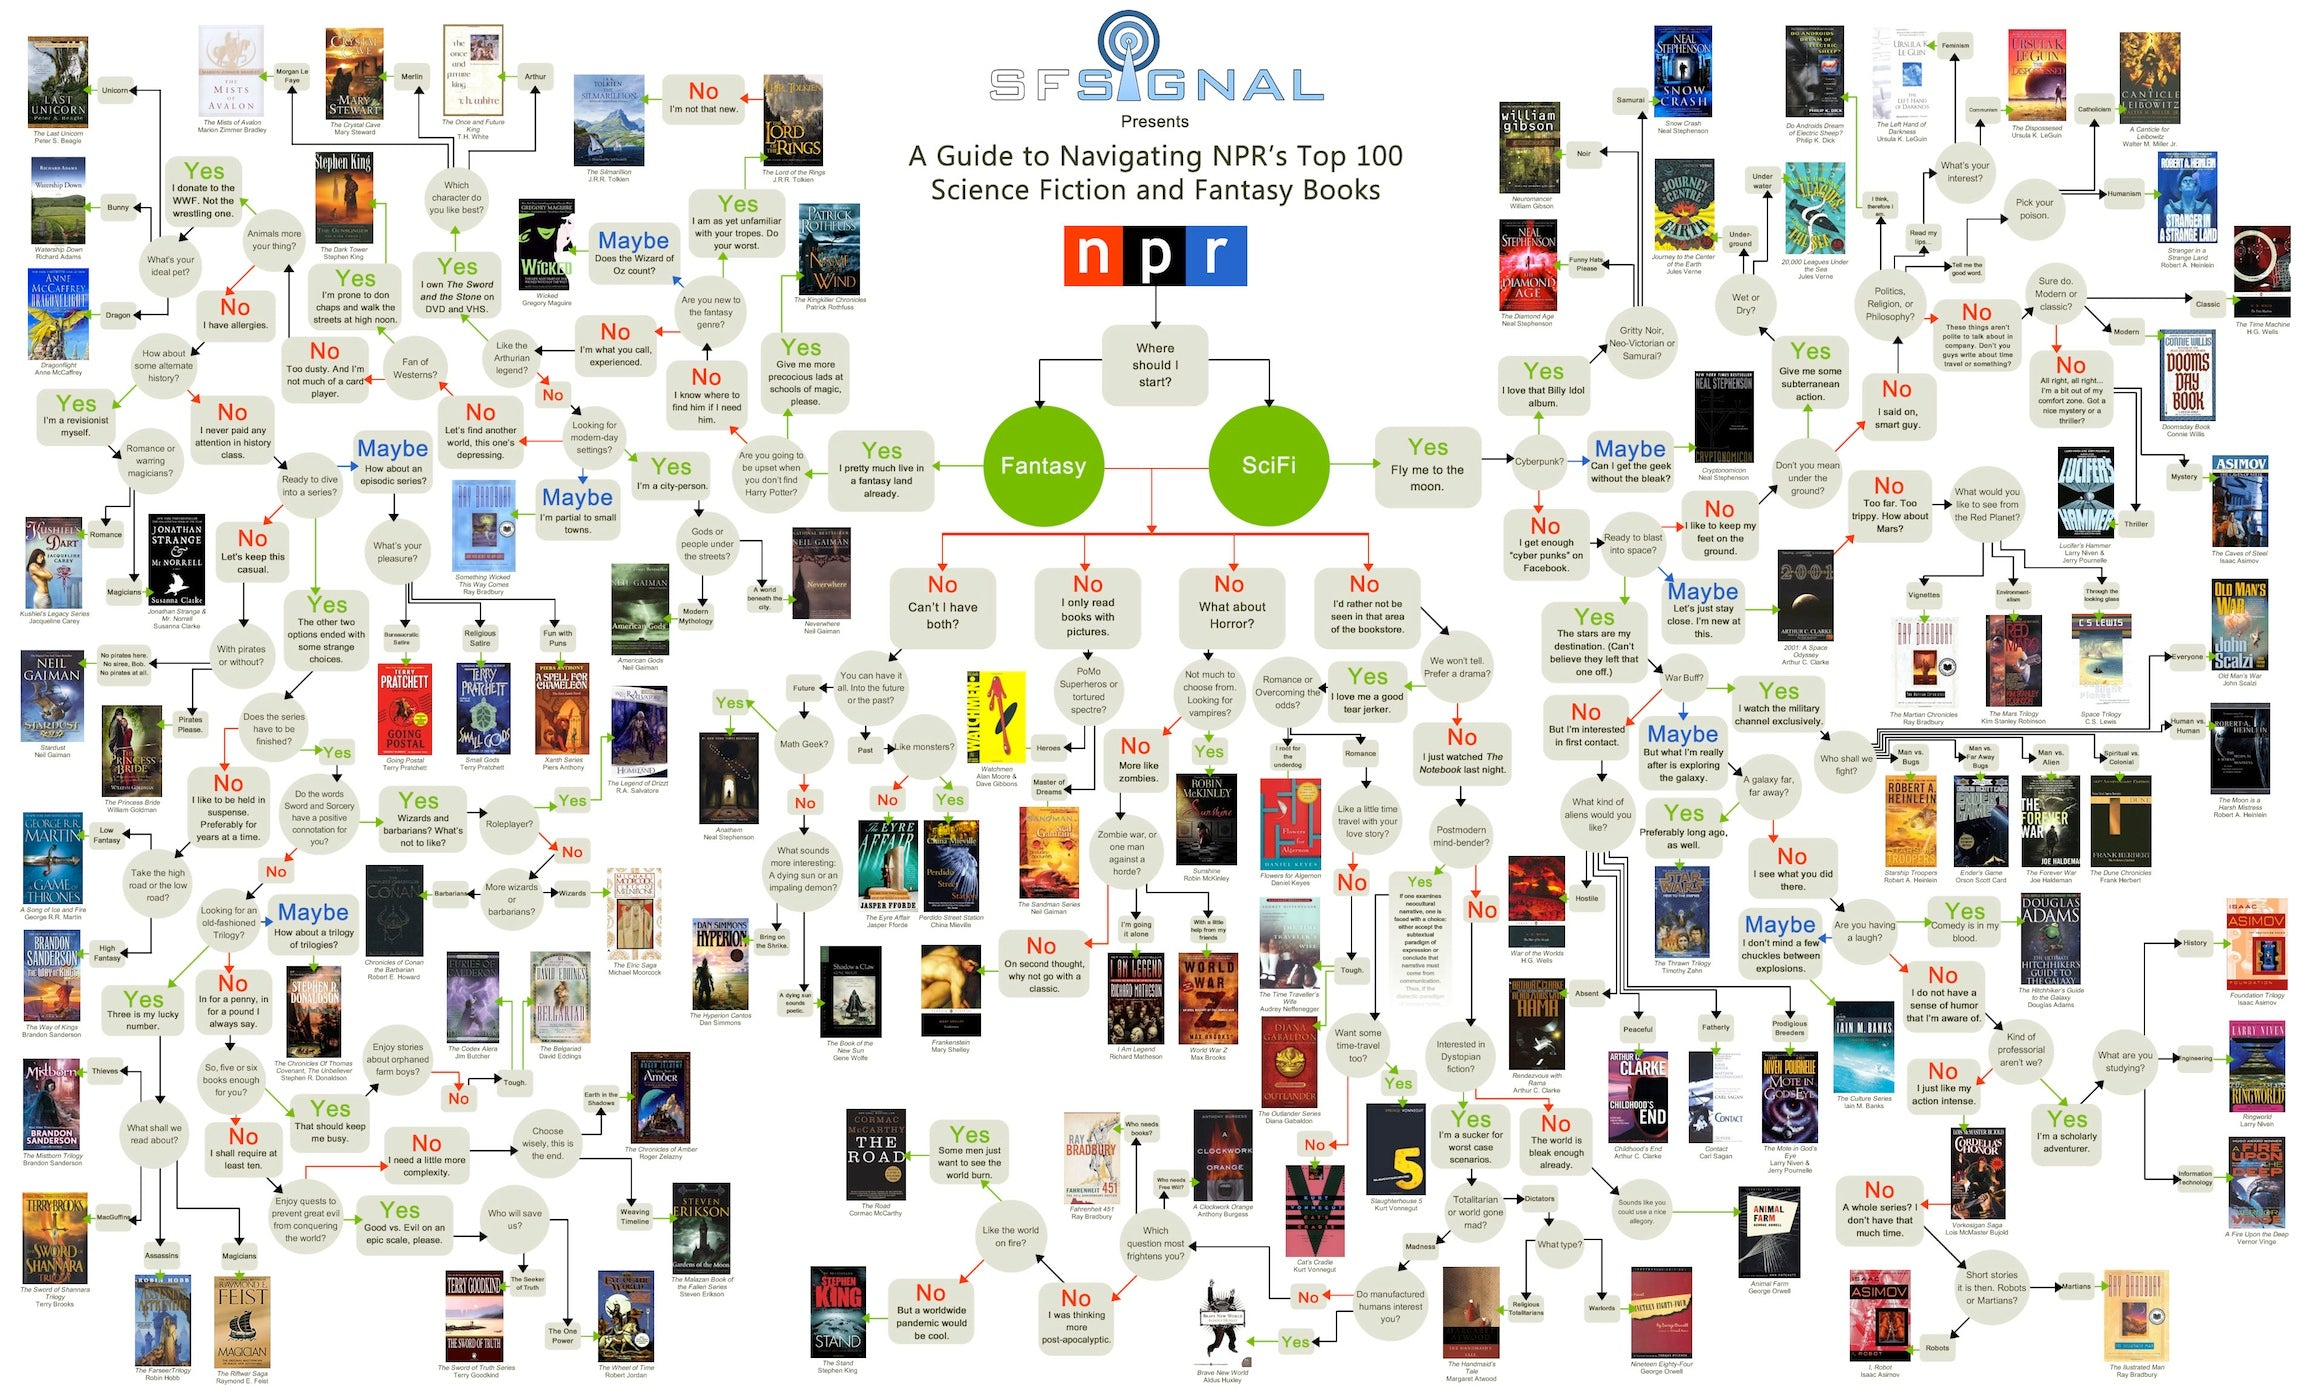 Flowchart of sci-fi & fantasy books guide by NPR